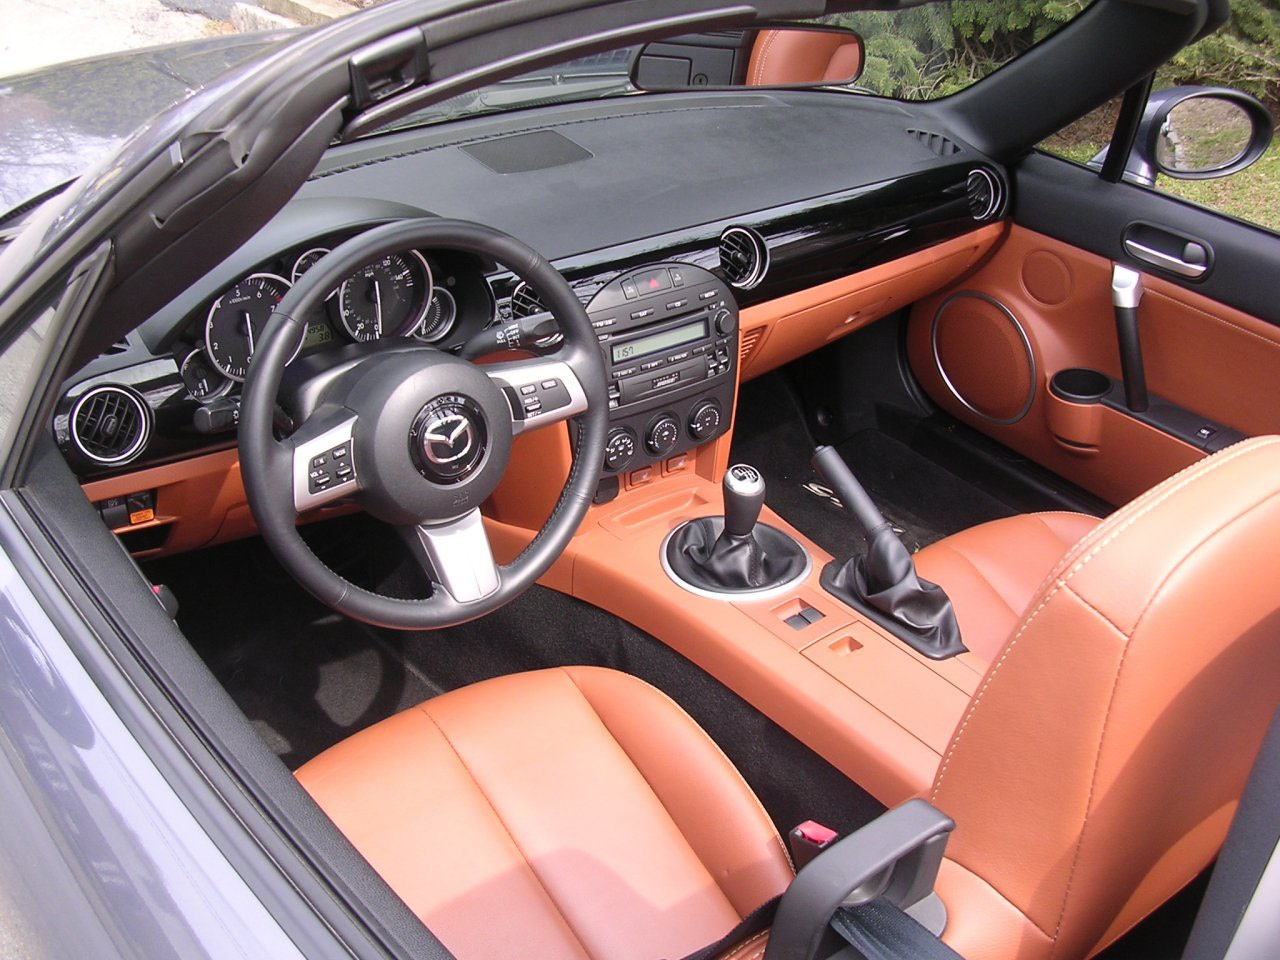 mazda miata pictures posters news and videos on your pursuit hobbies interests and worries. Black Bedroom Furniture Sets. Home Design Ideas